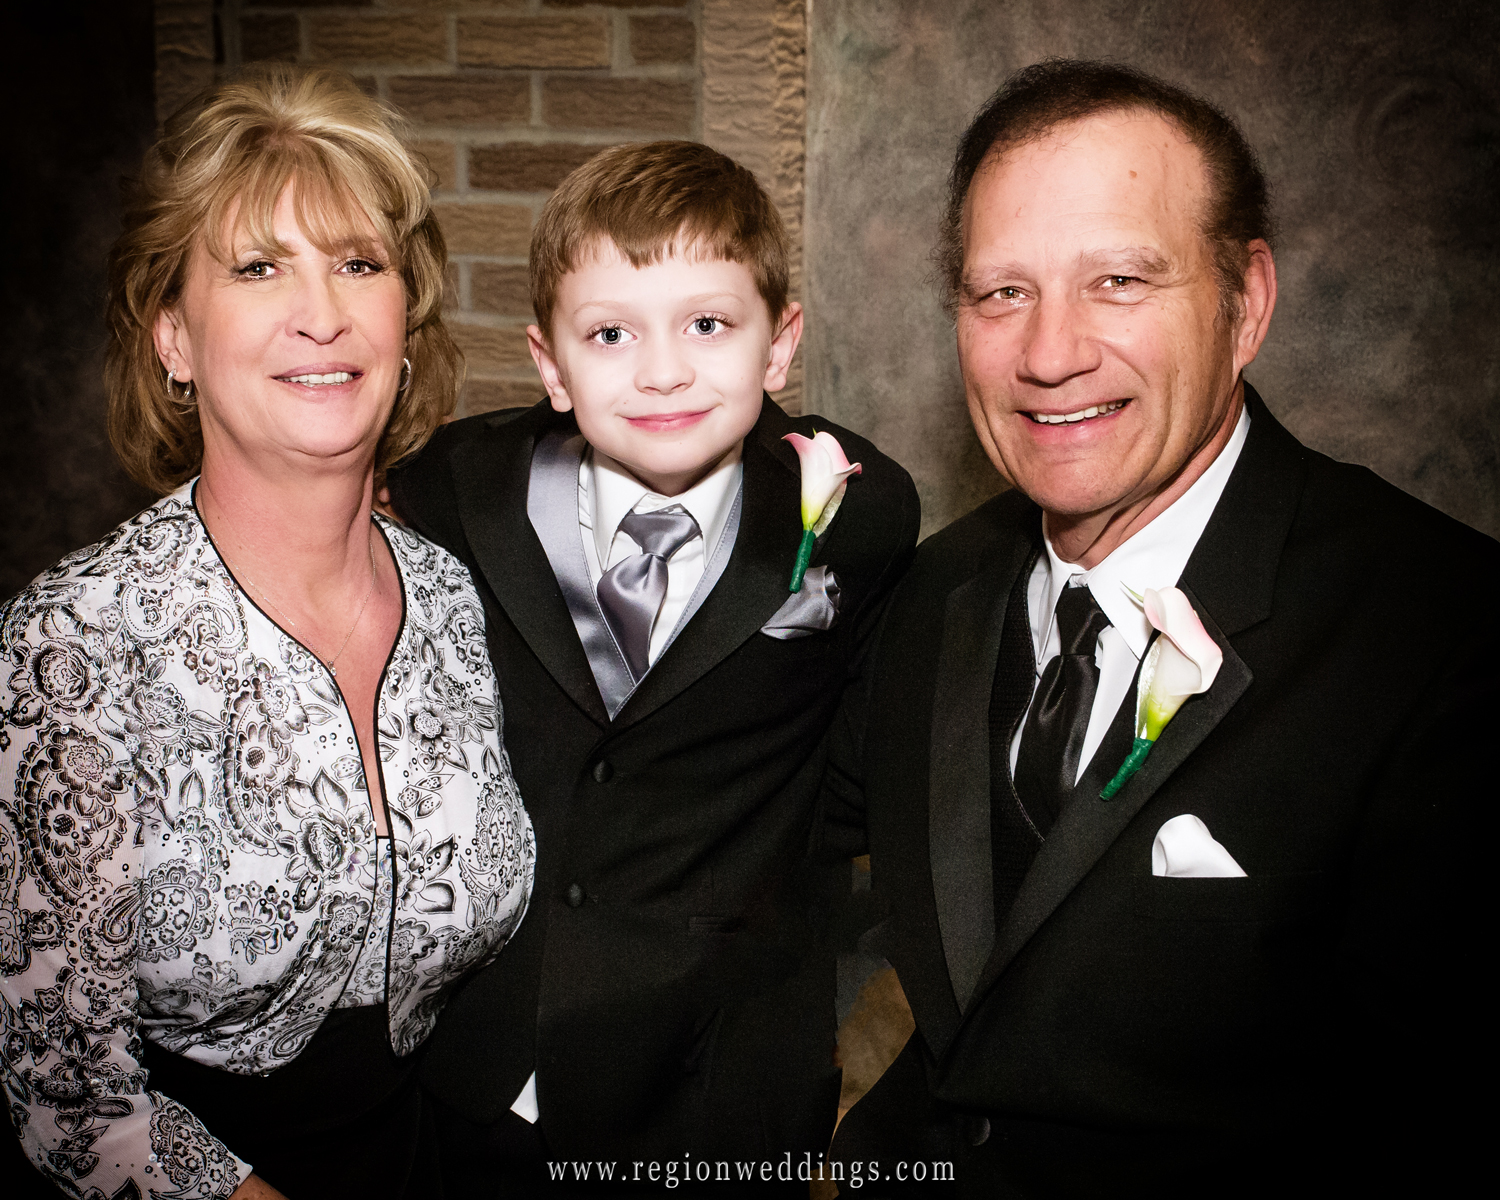 Grandparents with their grandson the ring bearer at a wedding reception at Casa Maria in Dyer, Indiana.